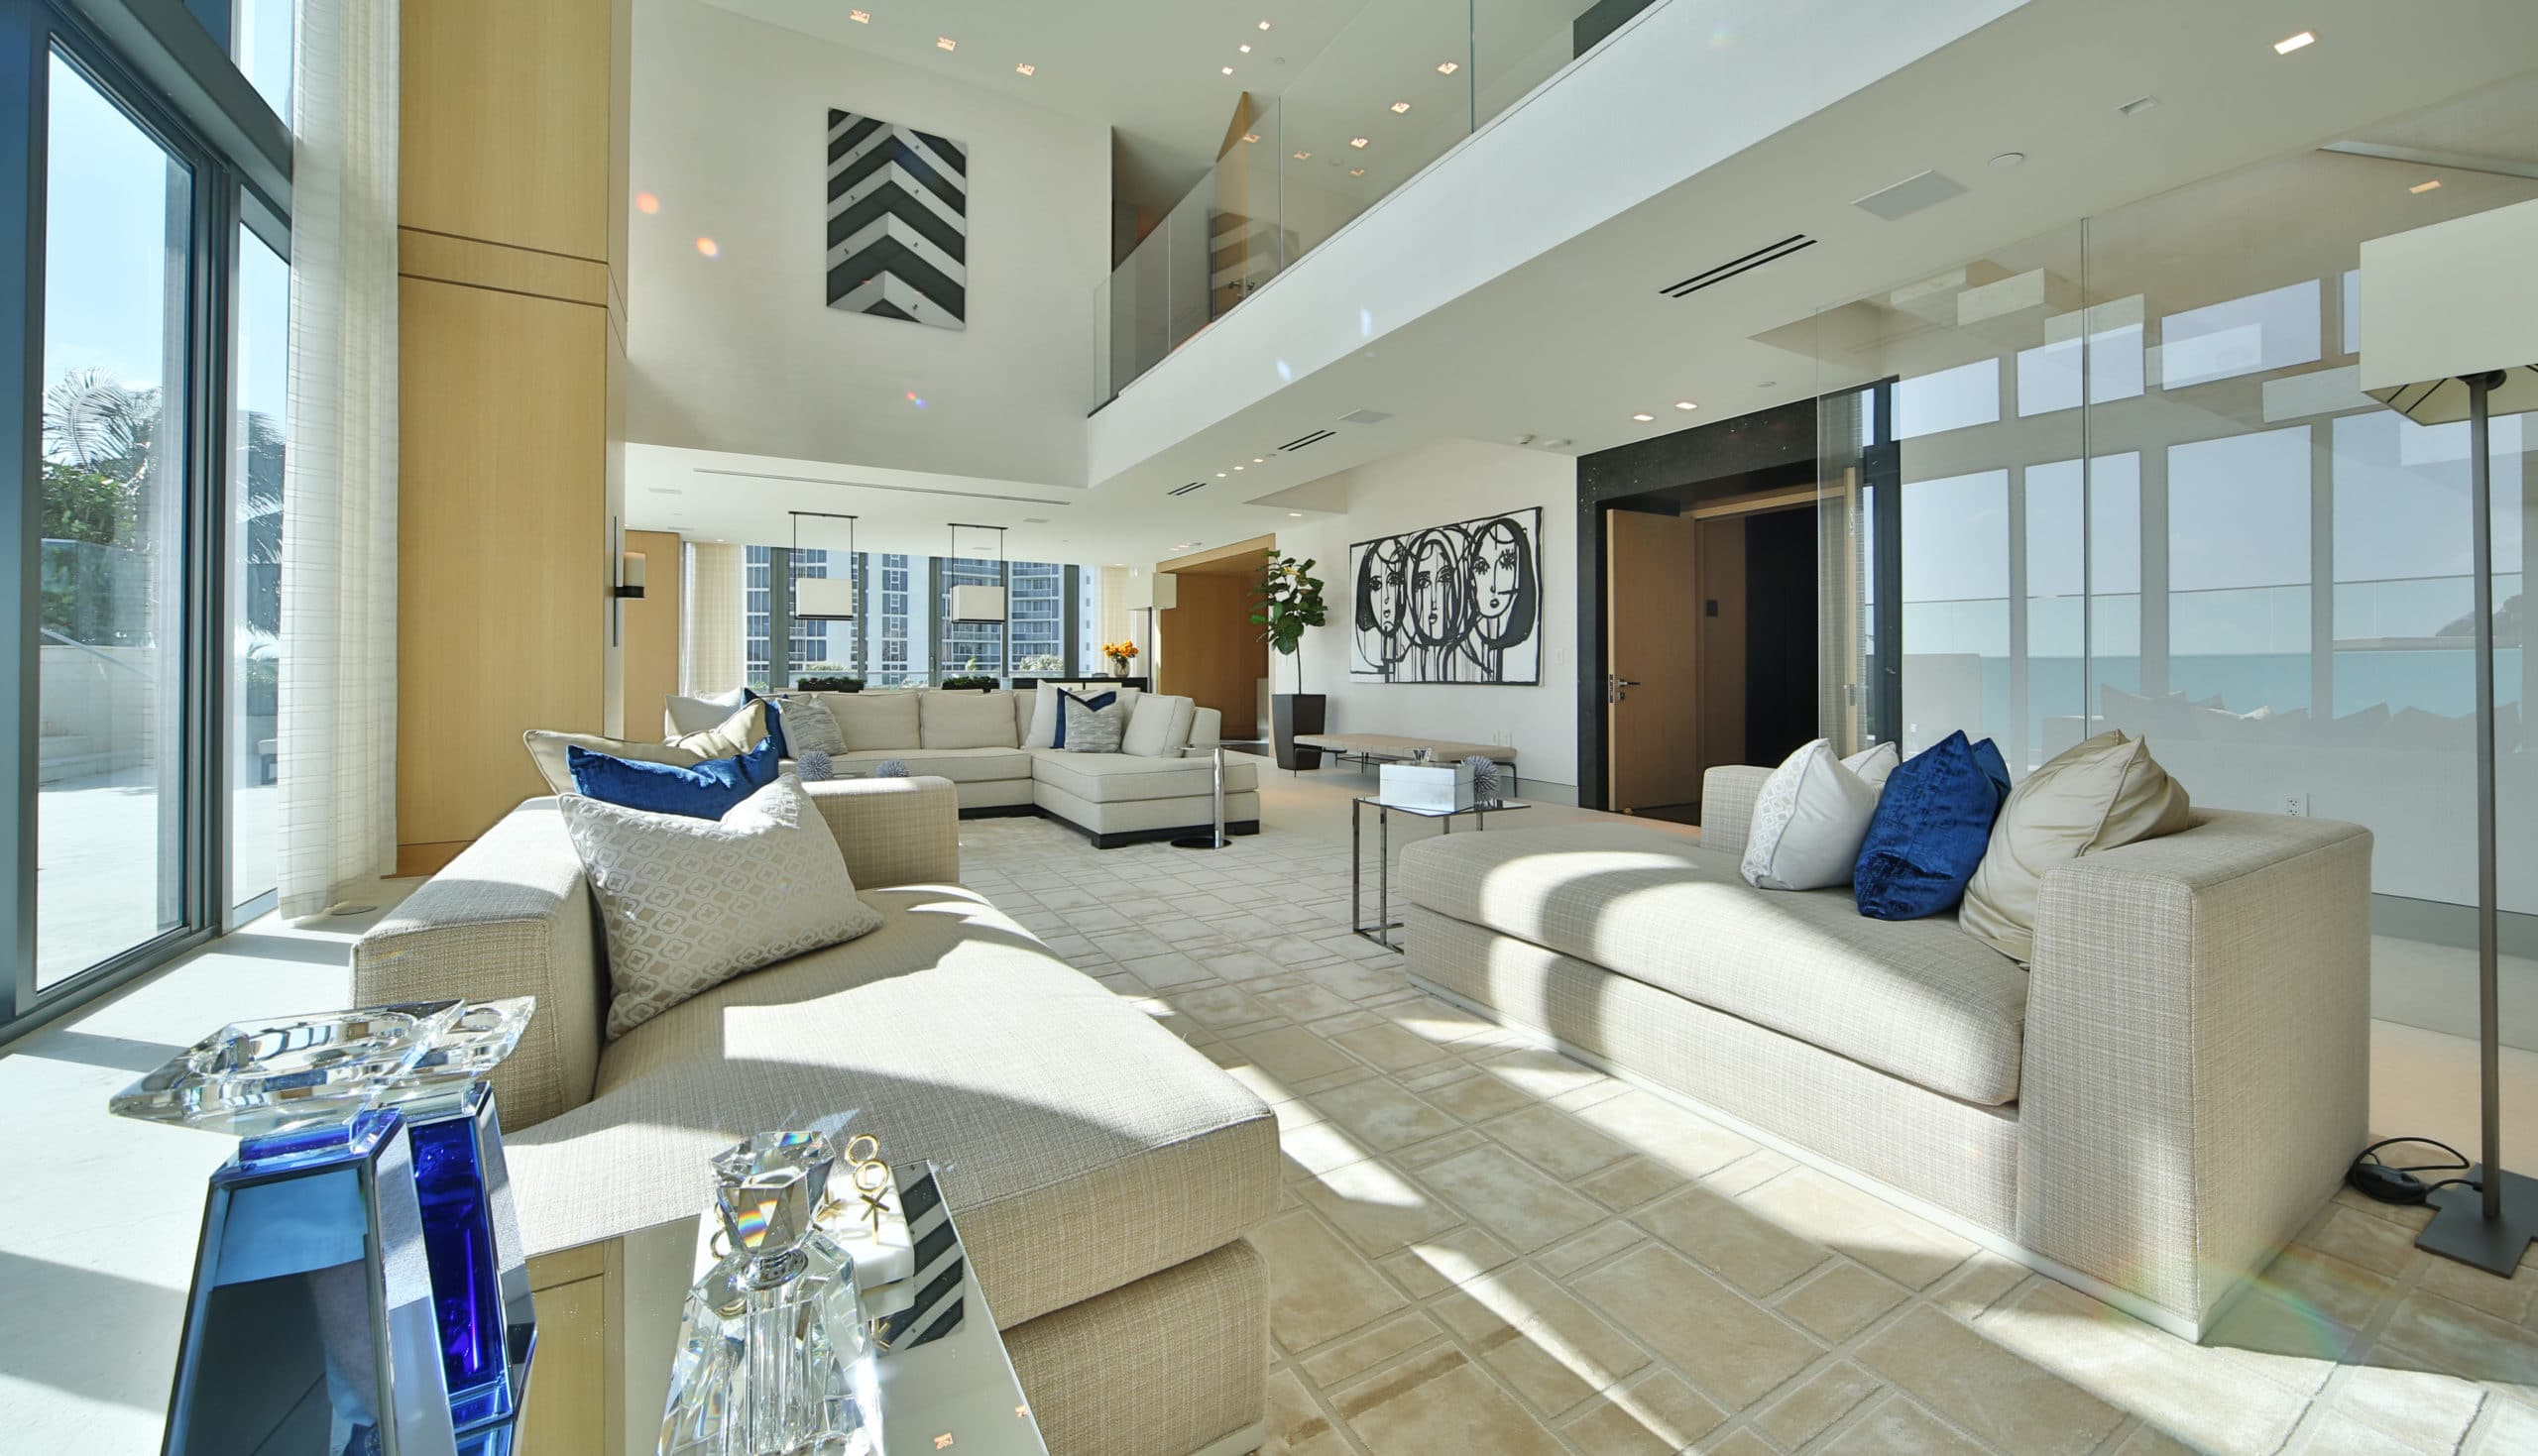 Interior of the Regalia Residences beach house in Miami. Living room furniture, high ceilings, and floor to ceiling windows.